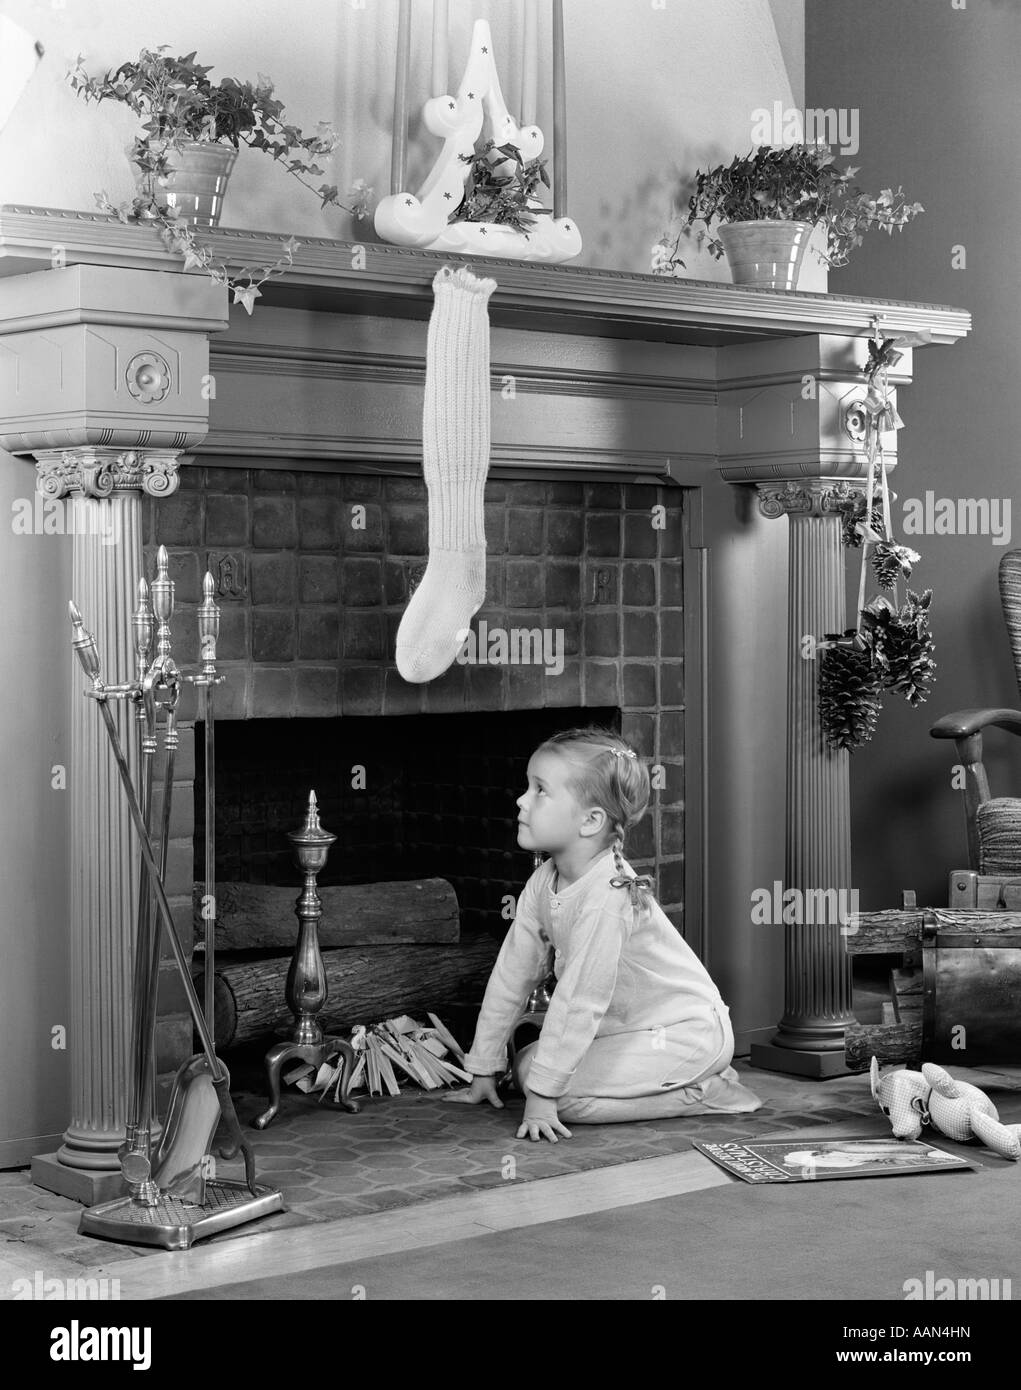 1940s LITTLE GIRL IN PAJAMAS KNEELING BY FIREPLACE UNDER STOCKING WAITING FOR SANTA CLAUS - Stock Image